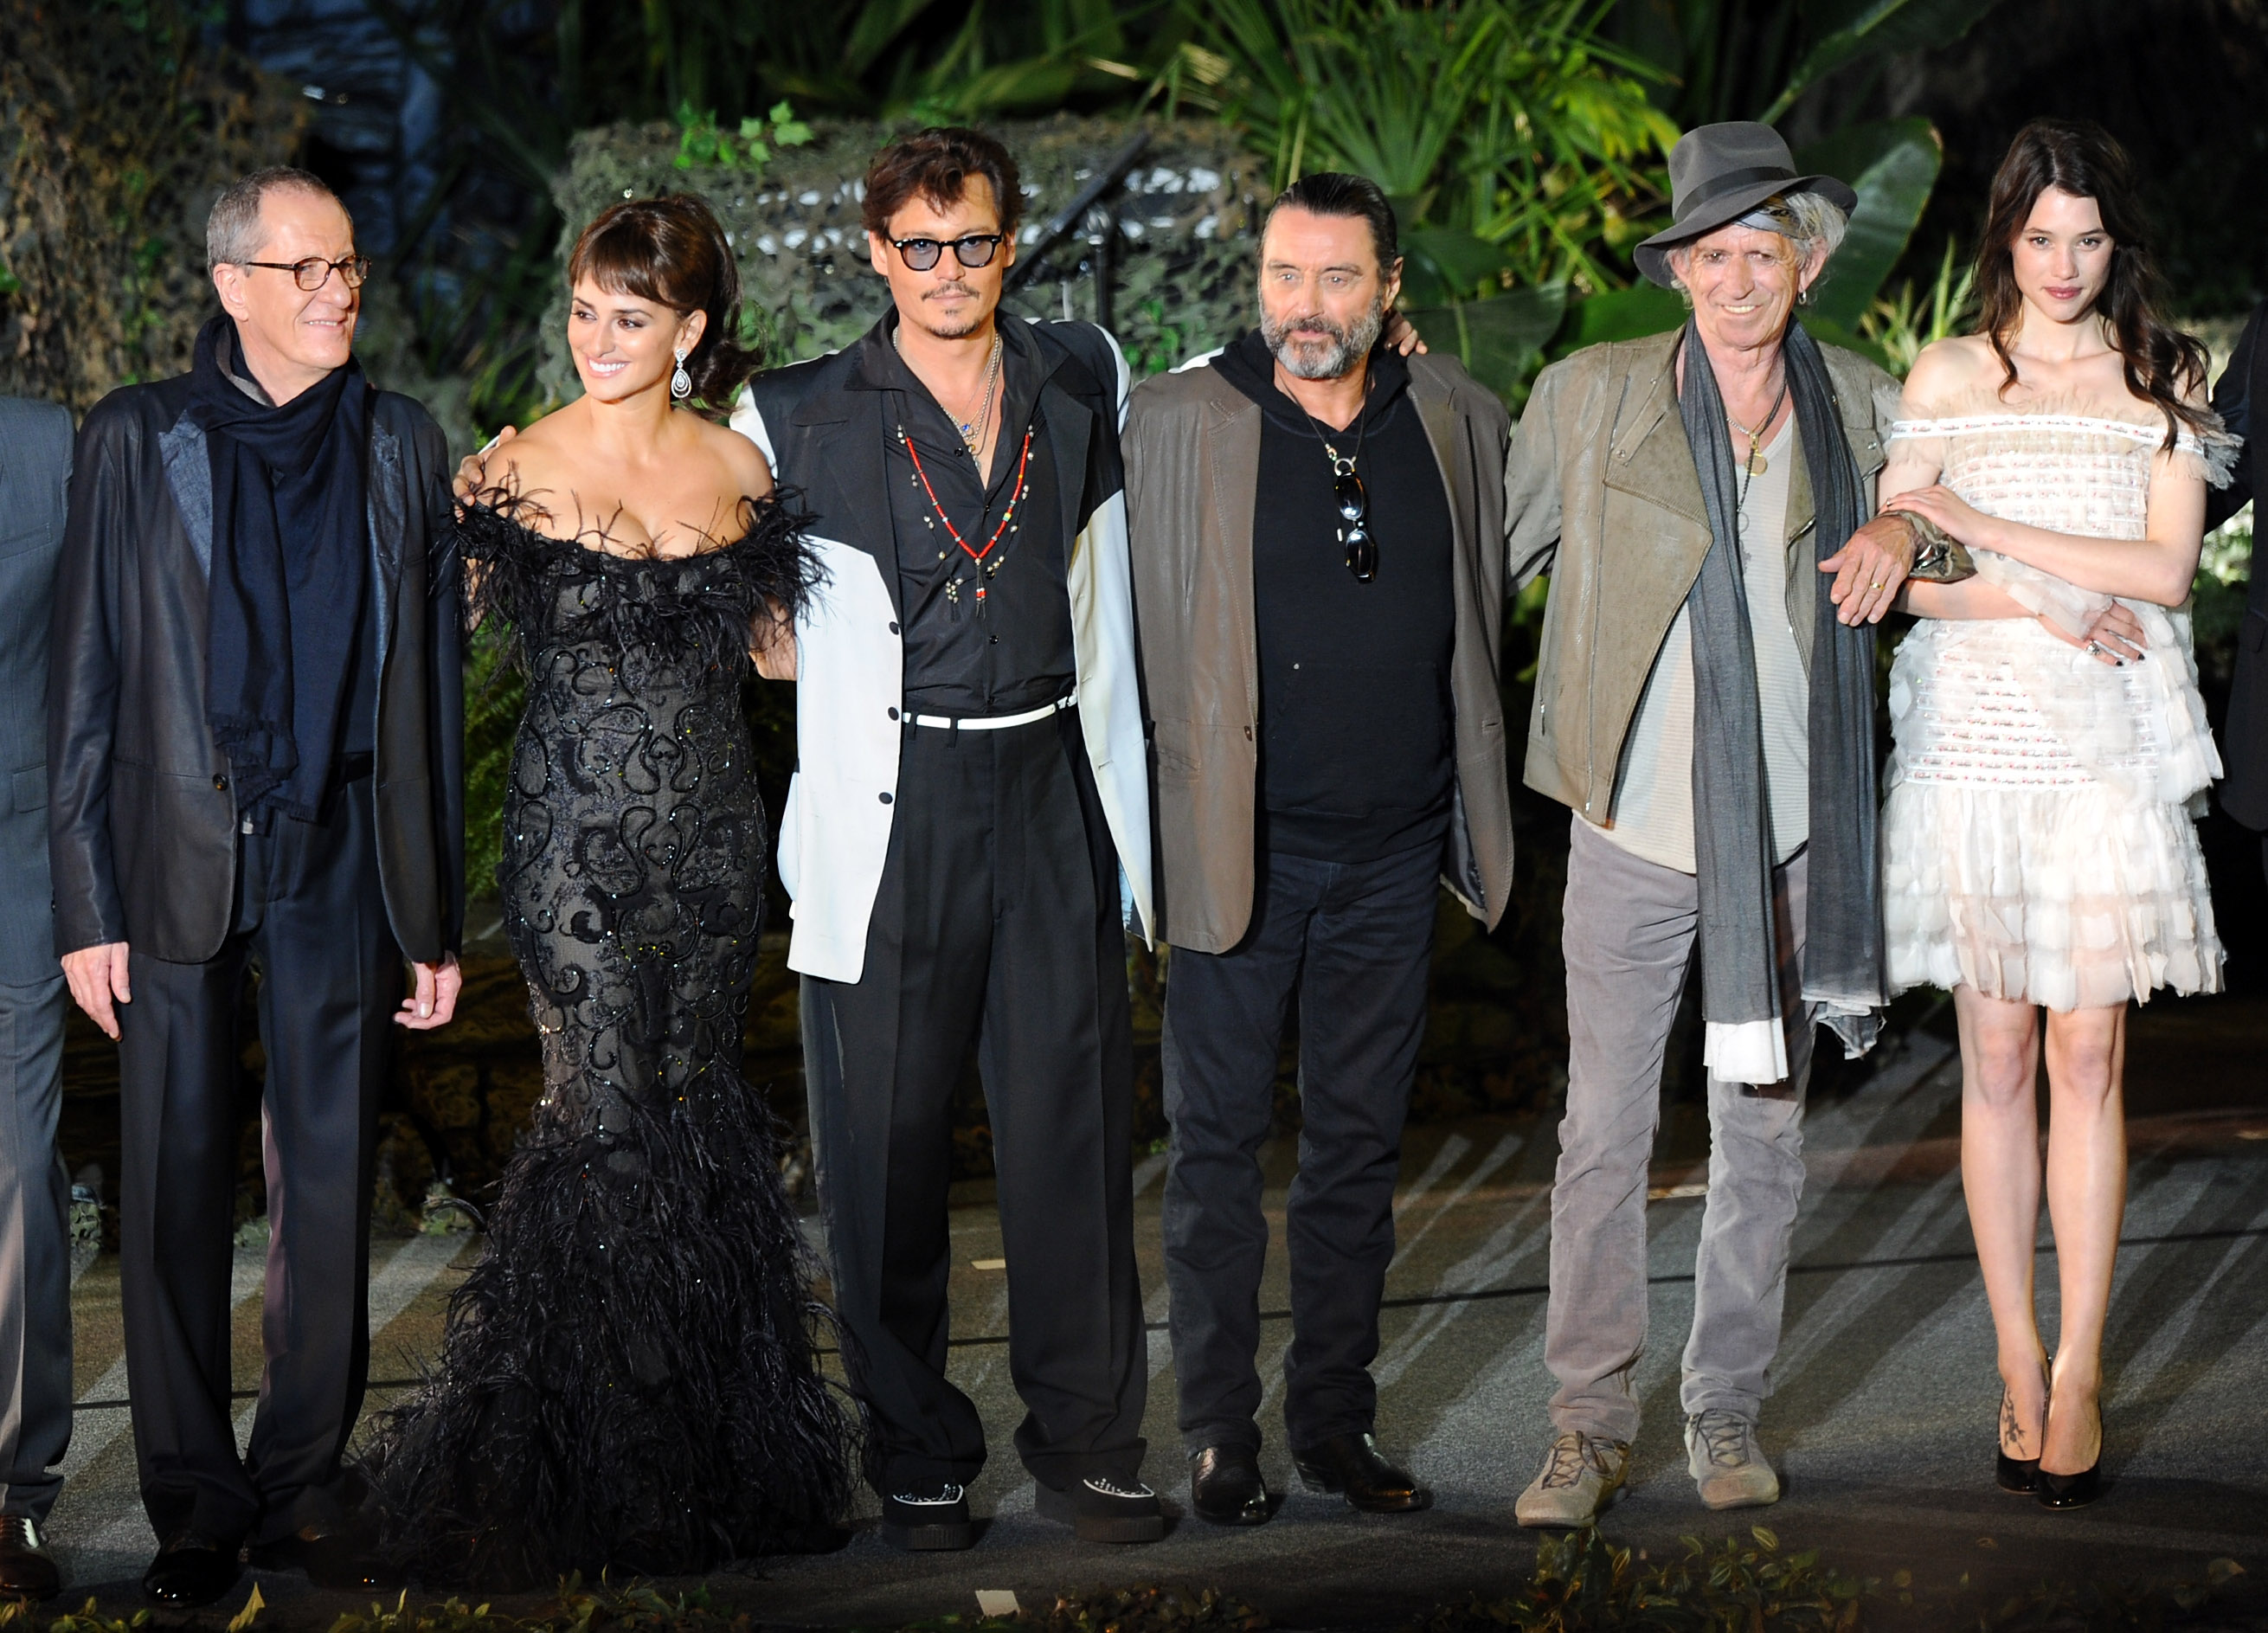 """ANAHEIM, CA - MAY 07:  (L-R) Actors Geoffrey Rush, Penelope Cruz, Johnny Depp, Ian McShane, Keith Richards, and Astrid Berges-Frisbey arrive at premiere of Walt Disney Pictures' """"Pirates of the Caribbean: On Stranger Tides"""" held at Disneyland on May 7, 2011 in Anaheim, California. Proceeds from the world premiere of Walt Disney Pictures' """"Pirates Of The Caribbean: On Stranger Tides"""" will benefit the Boys & Girls Clubs of America.  (Photo by Kevin Winter/Getty Images)"""